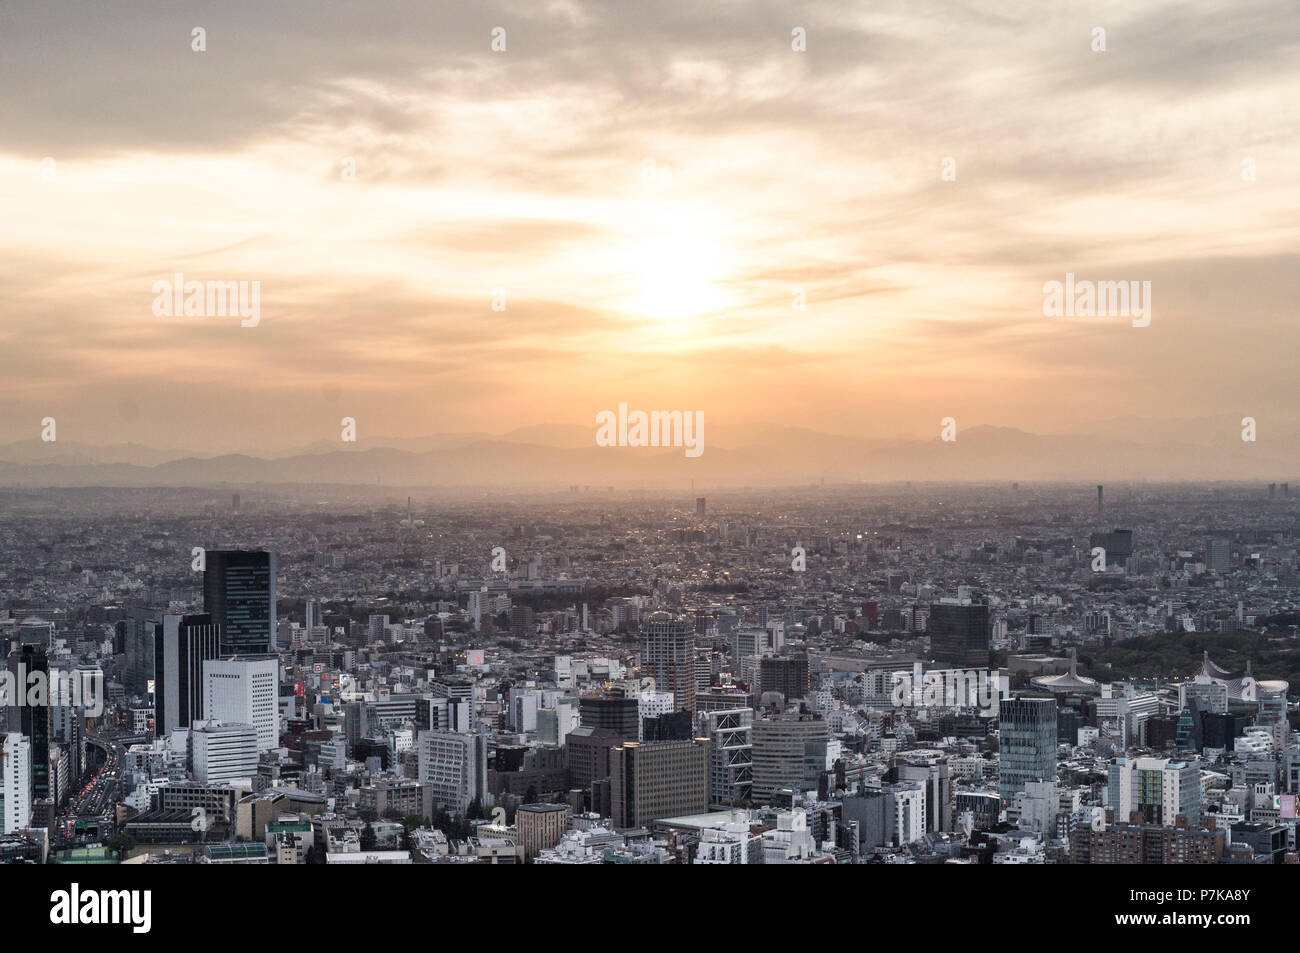 A look over Tokyo in the sunset - Stock Image